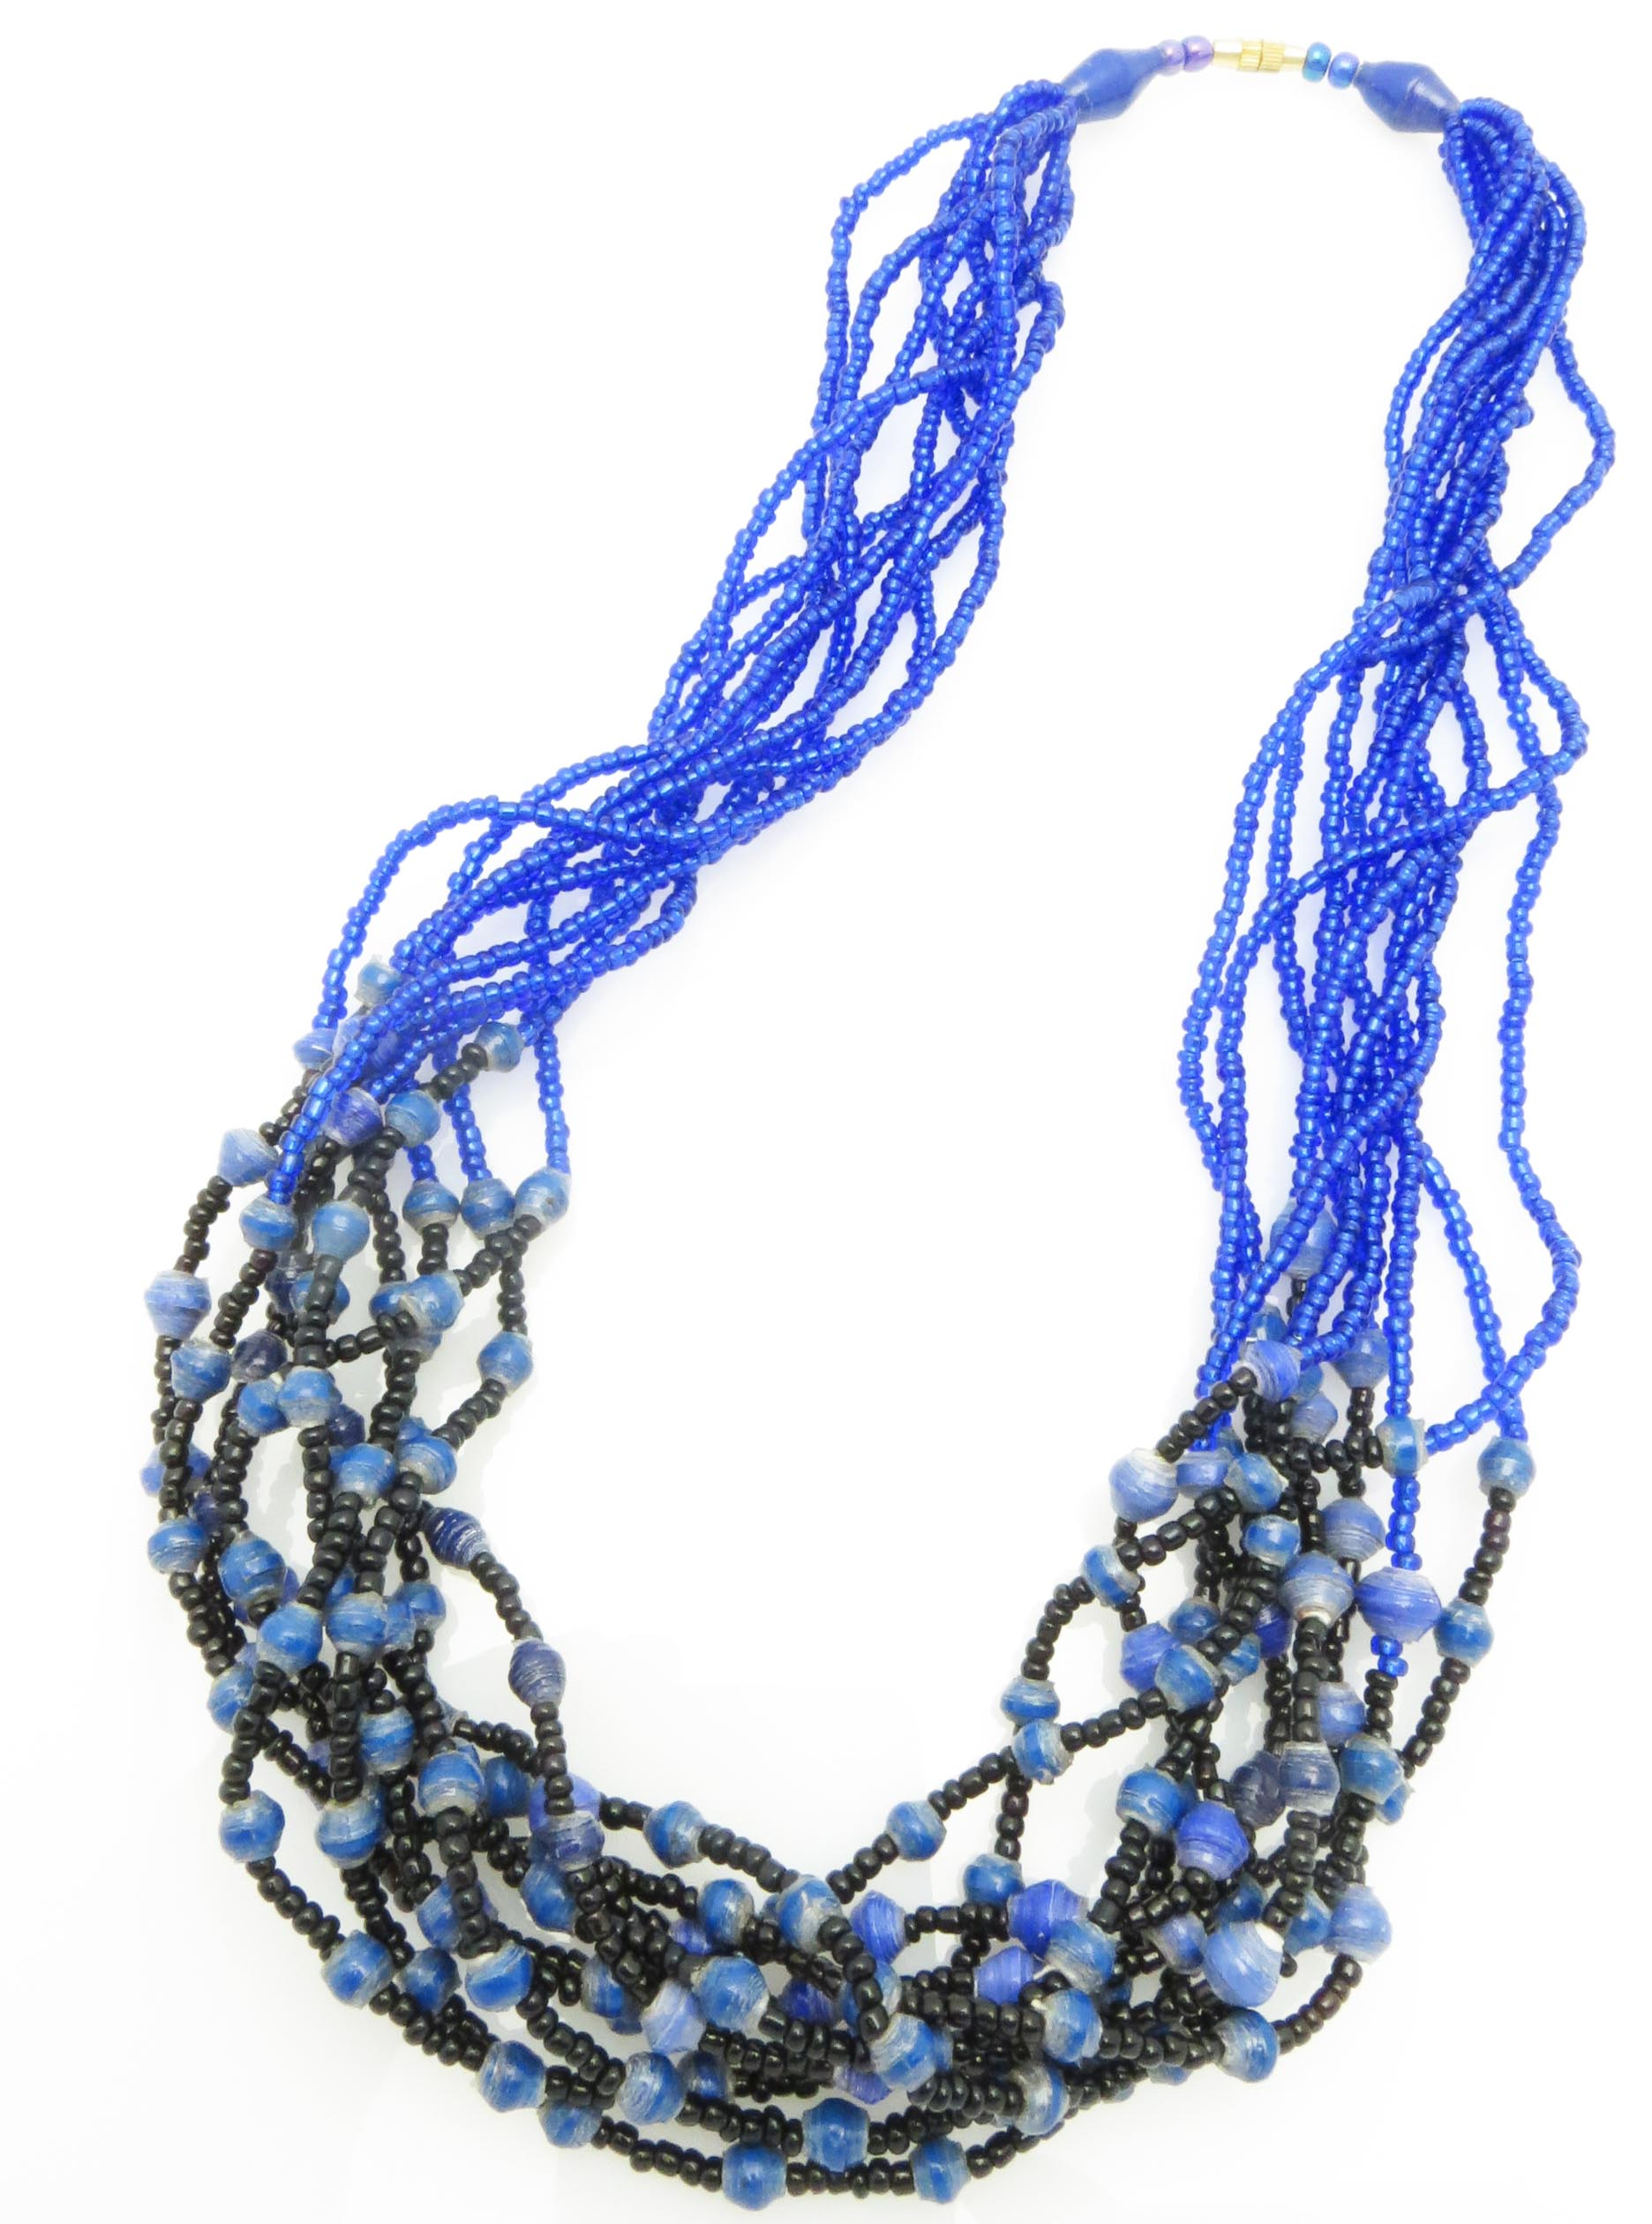 Paper/seed bead multi-strand - blue necklace